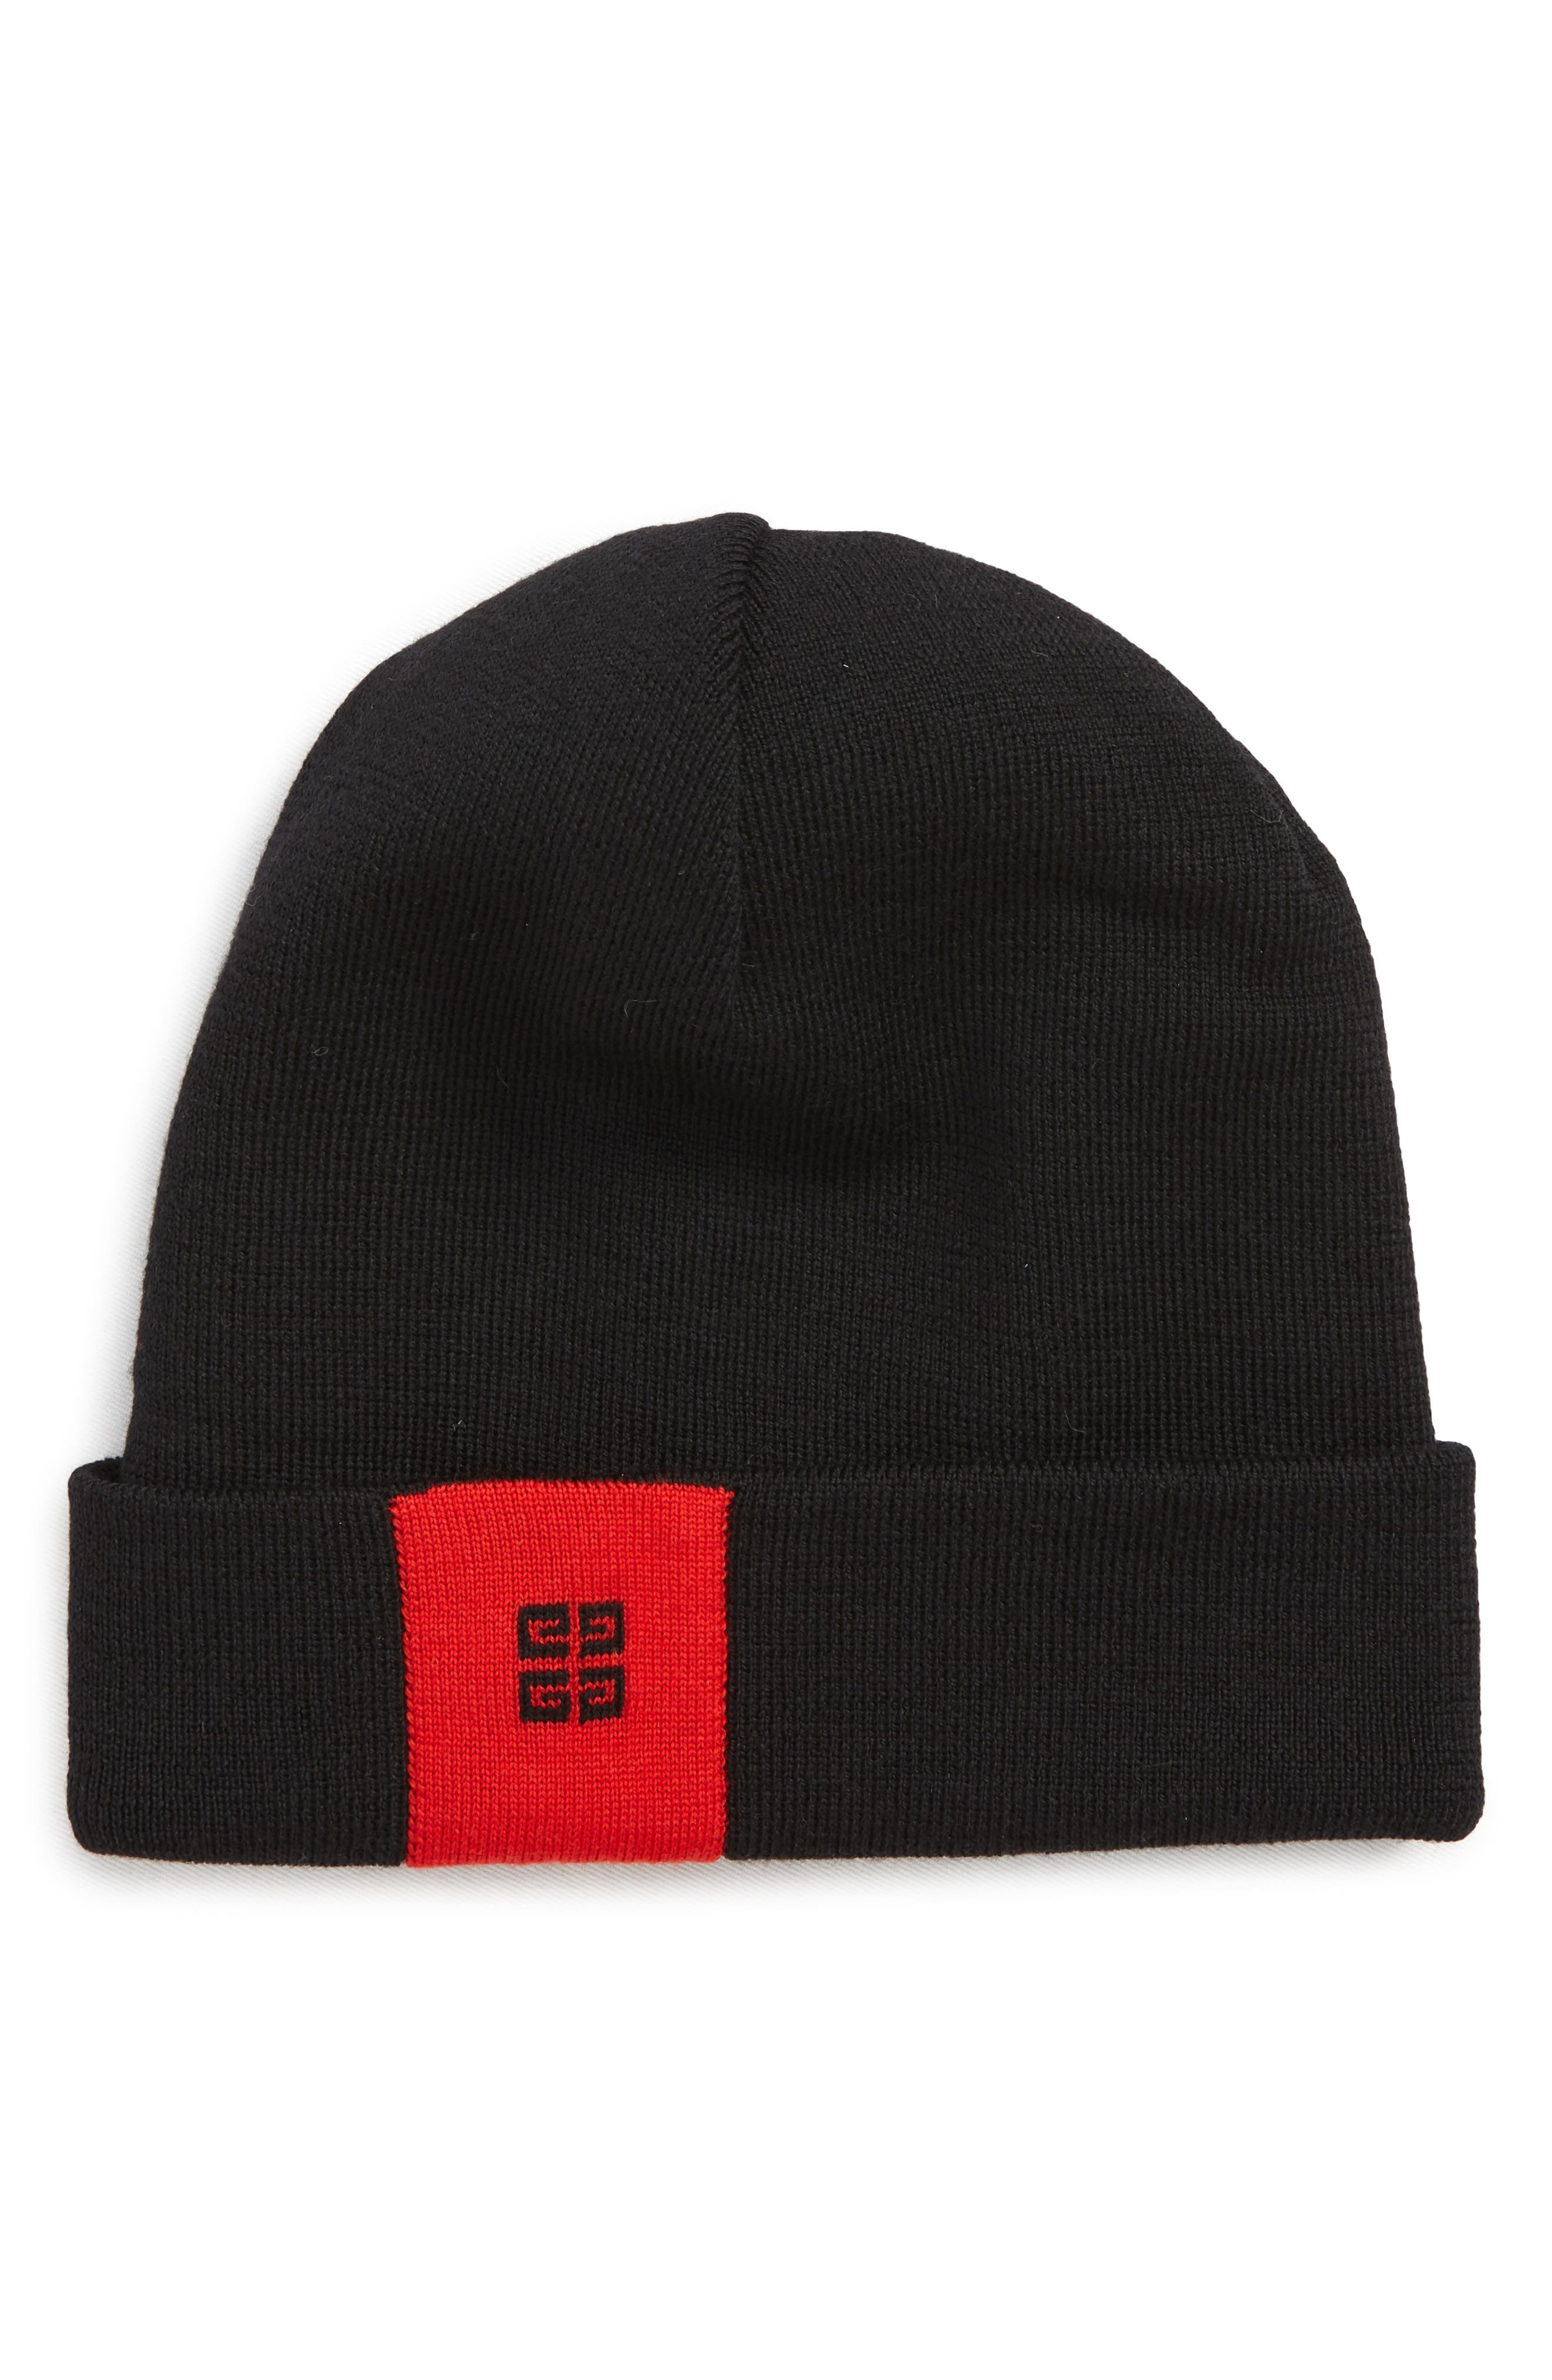 4G Wool Beanie,                             Main thumbnail 1, color,                             BLACK/ RED